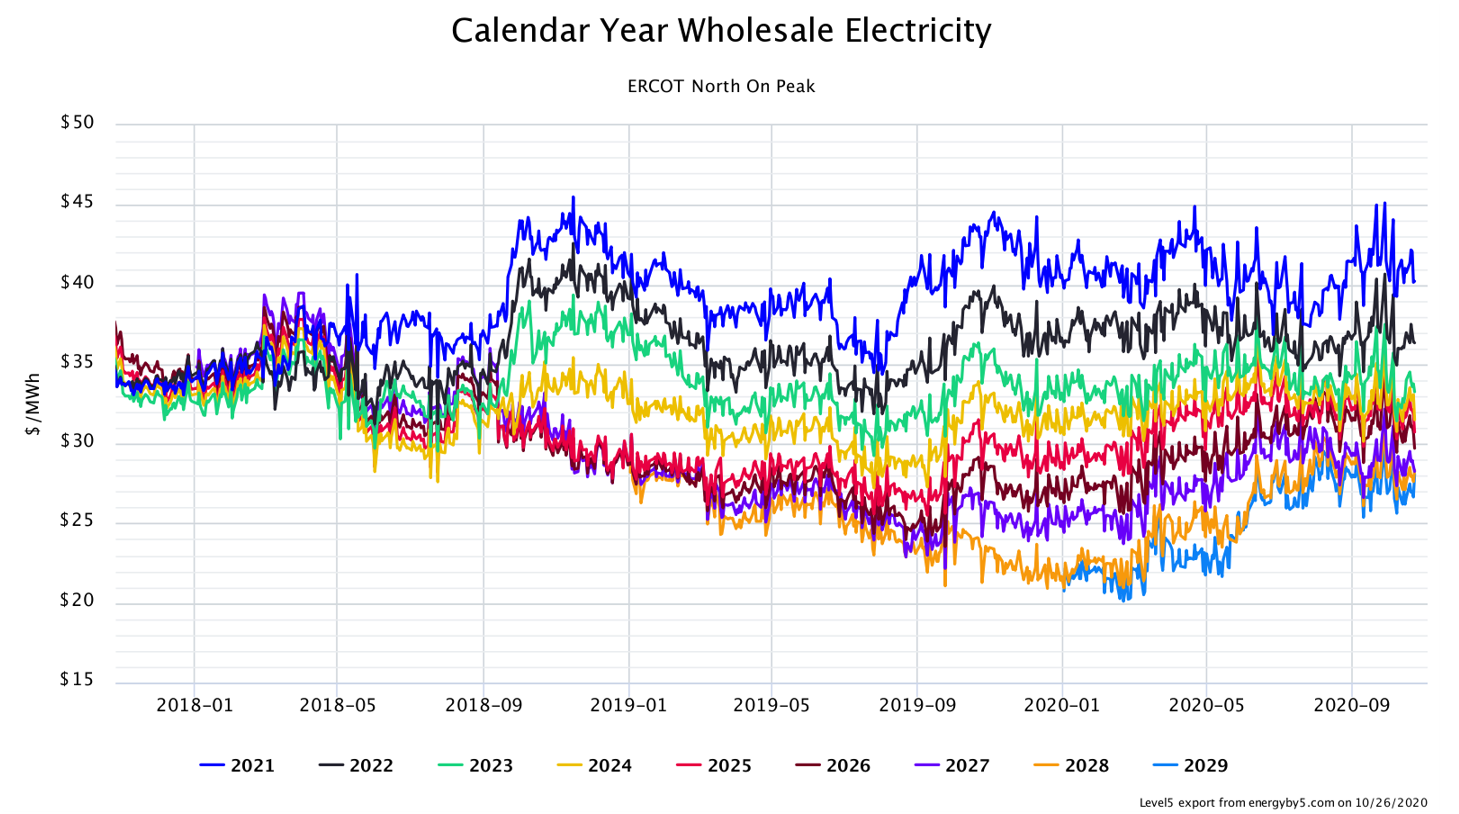 Calendar Year Wholesale Electricity ERCOT North